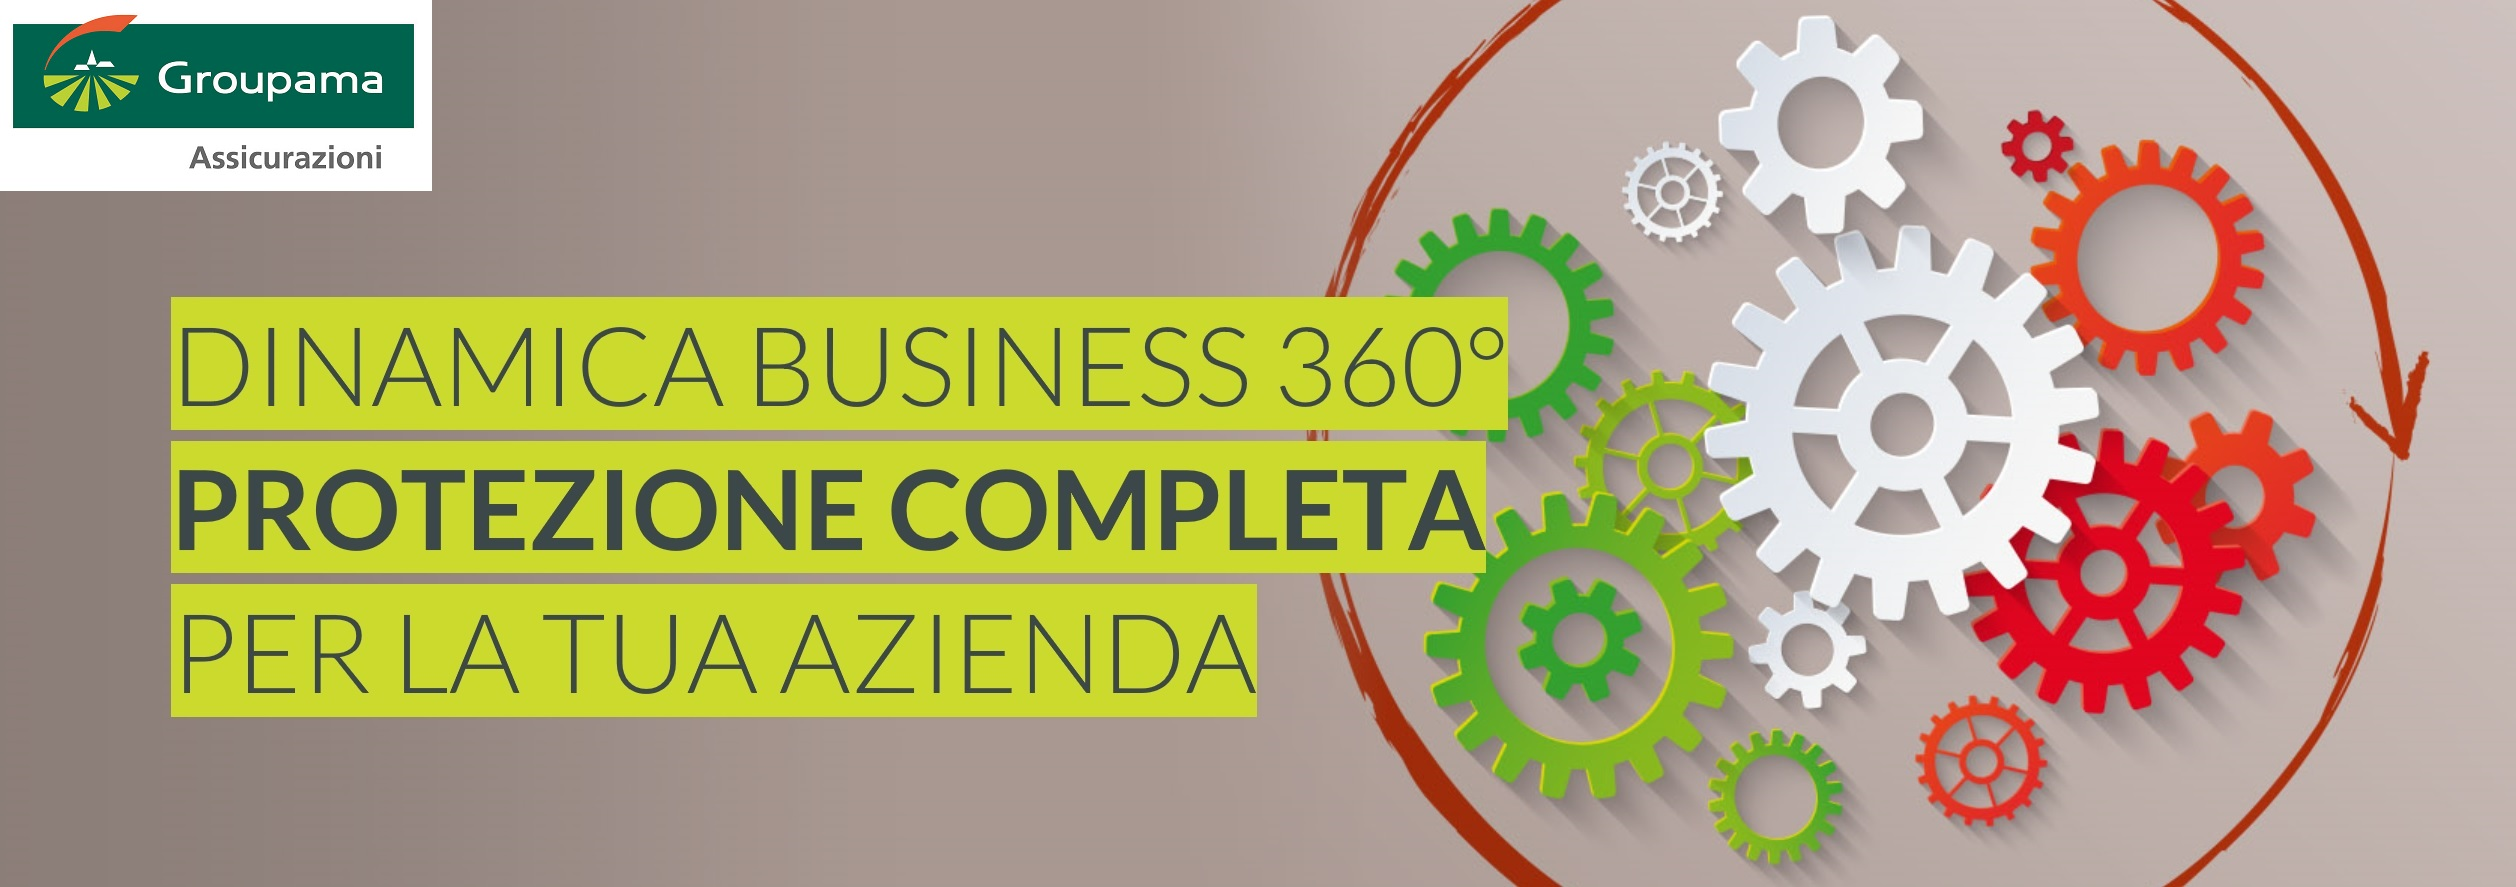 Groupama Dinamica Businness 360°